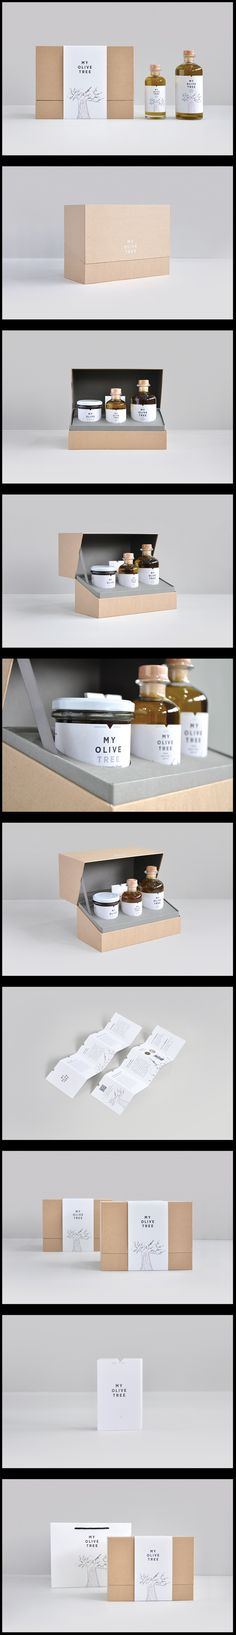 Get the Best and Most Unique Packaging Box Ideas! Packaging Box Design, Candle Packaging, Cool Packaging, Tea Packaging, Bottle Packaging, Packaging Design Inspiration, Brand Packaging, Label Design, Branding Design